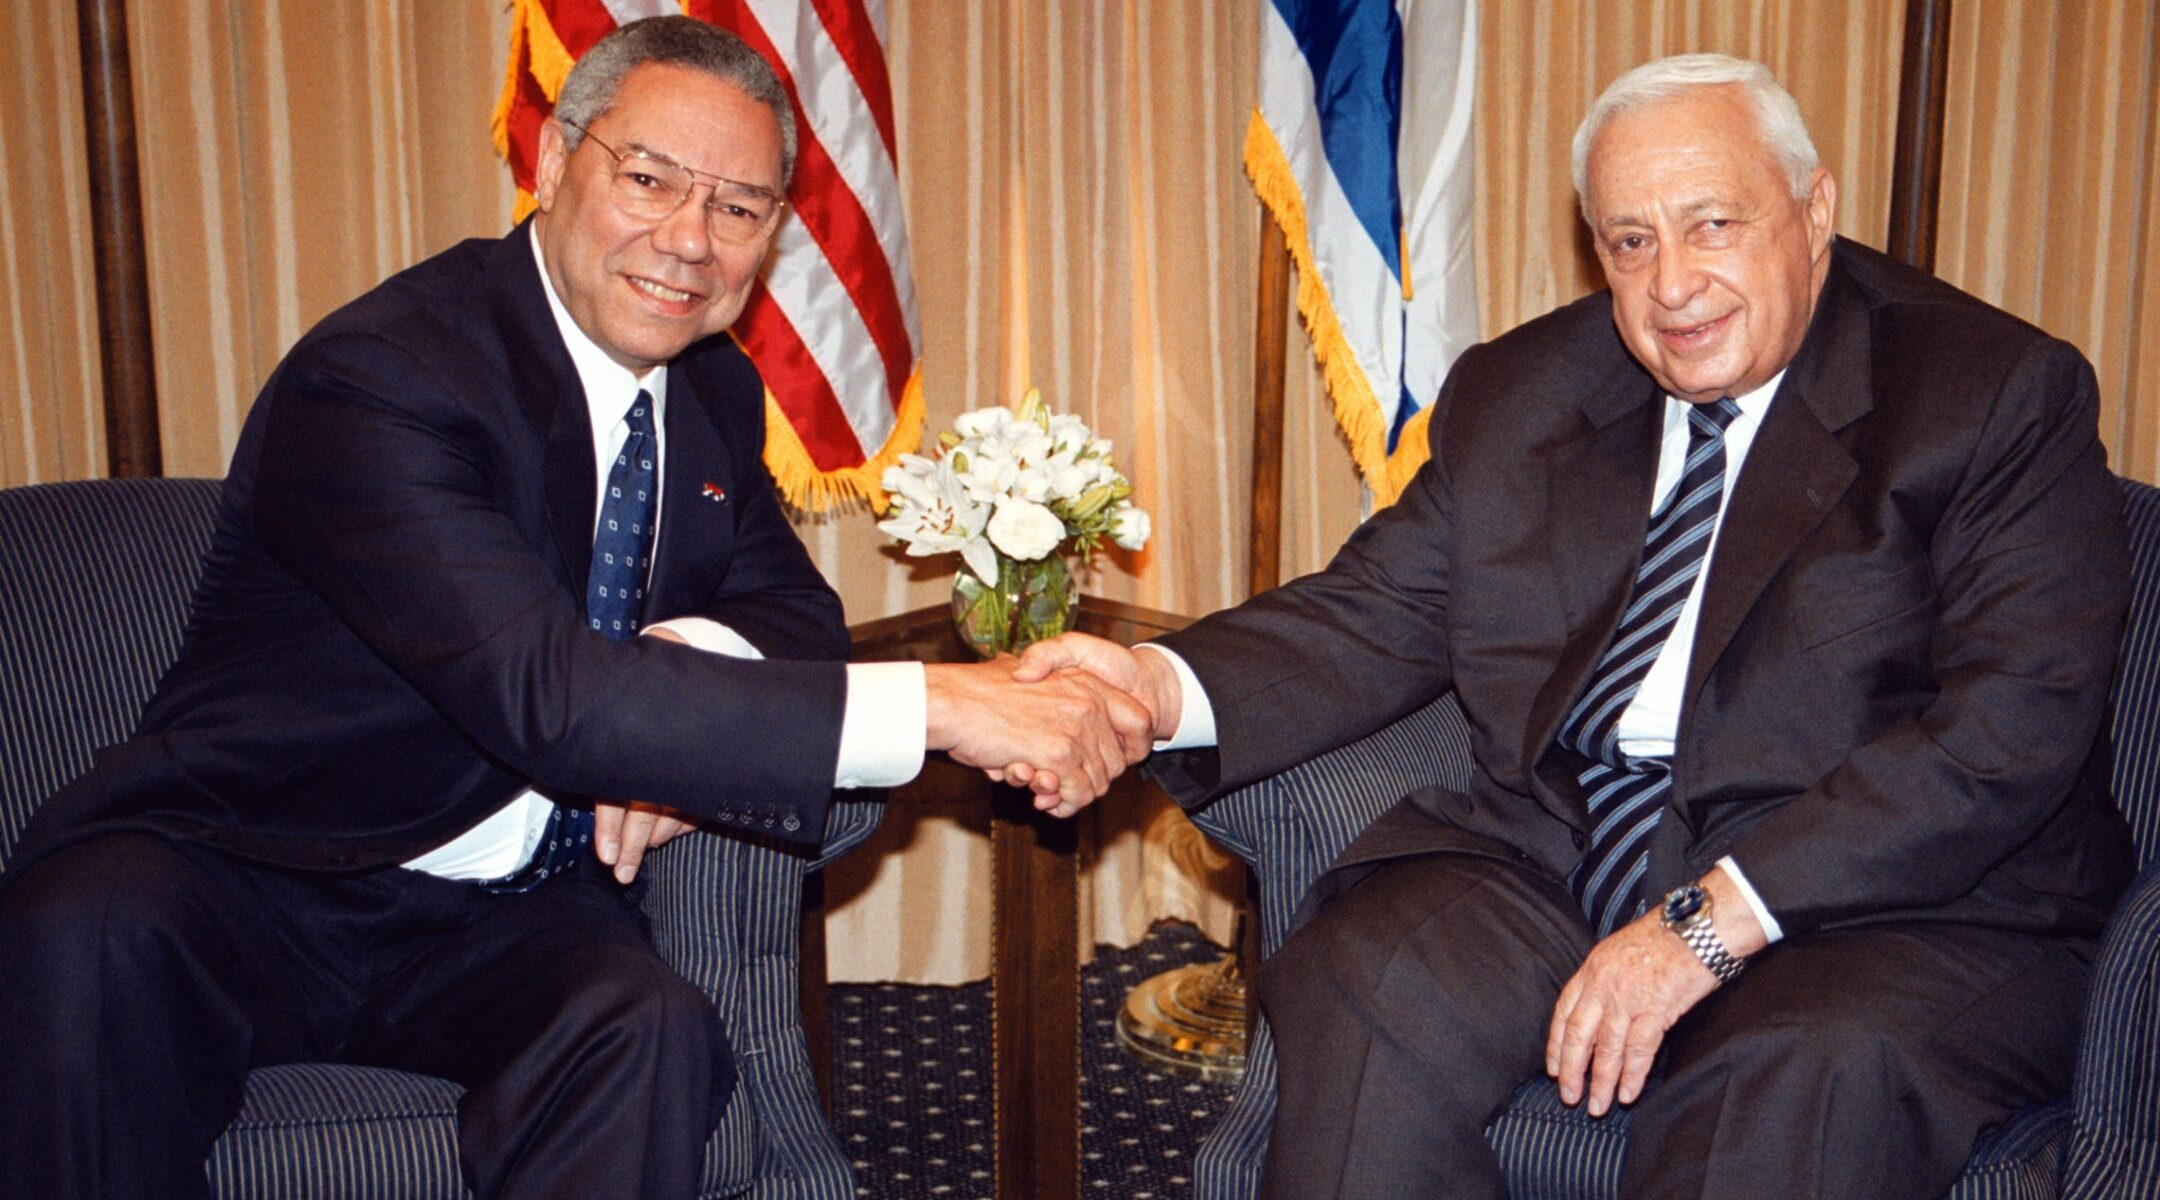 US Secretary of State Colin Powell (left) shakes hands with Israeli Prime Minister-elect Ariel Sharon in Jerusalem on February 25, 2001. (Photo/JTA-Getty Images-Pool photo)